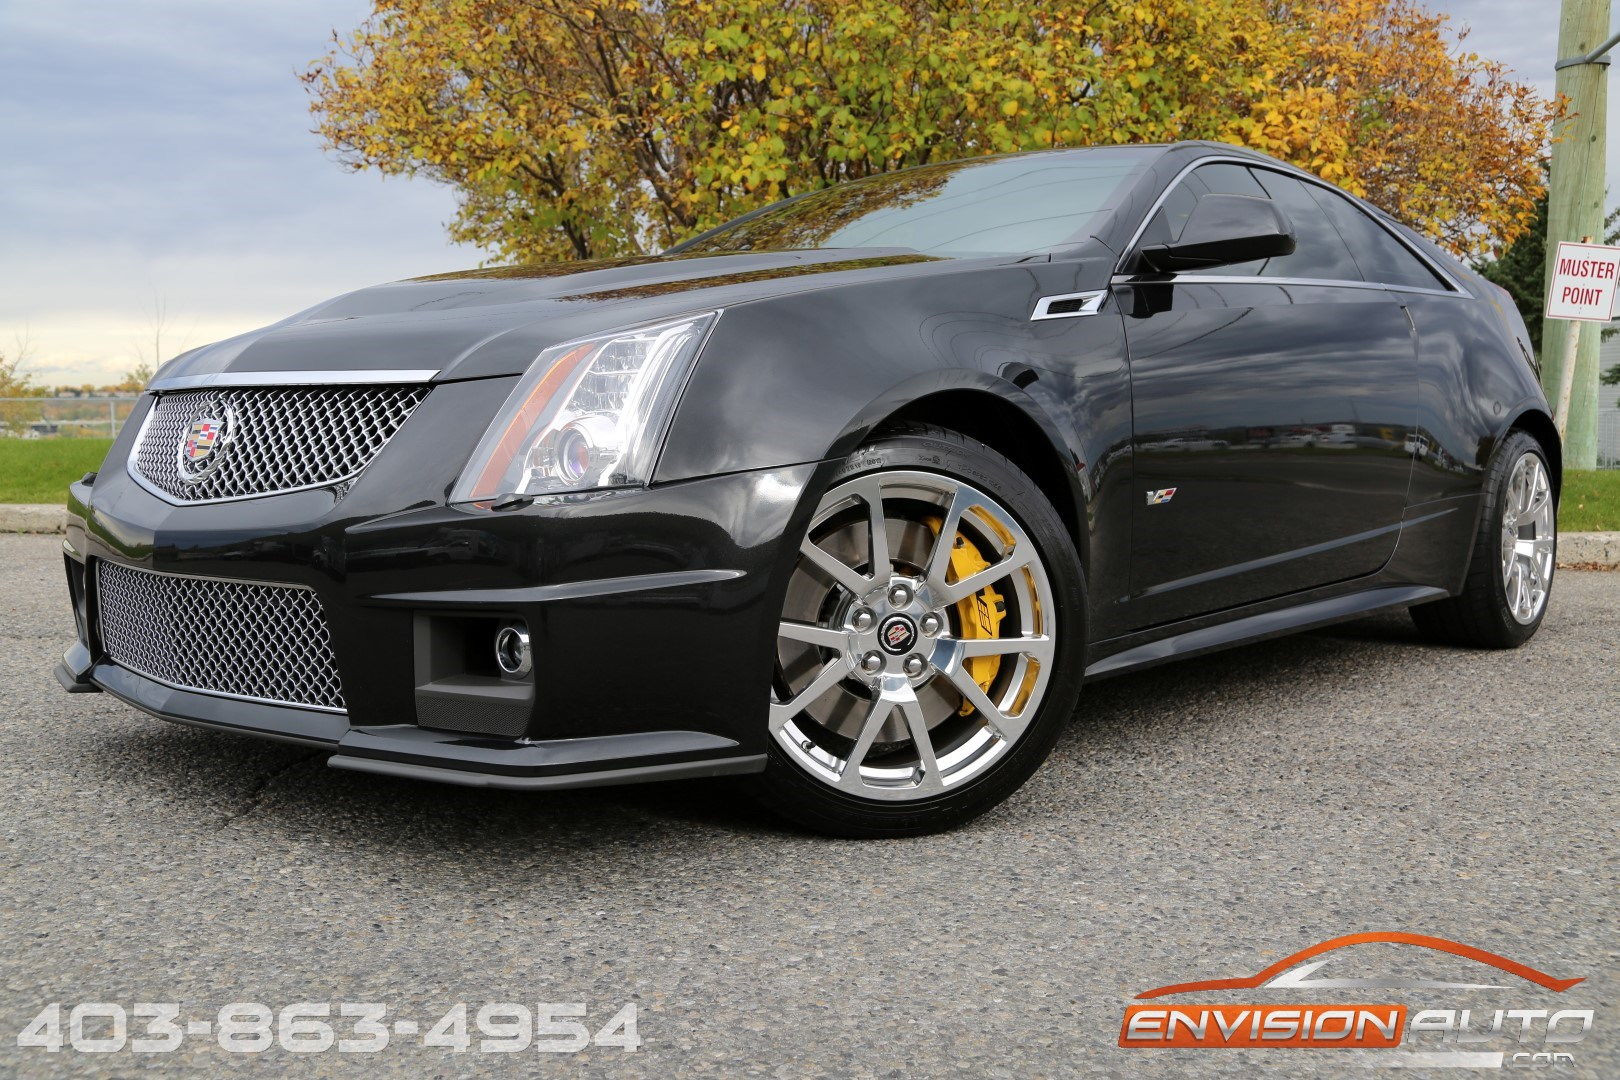 2012 cadillac cts v coupe recaro seats 1 local owner. Black Bedroom Furniture Sets. Home Design Ideas